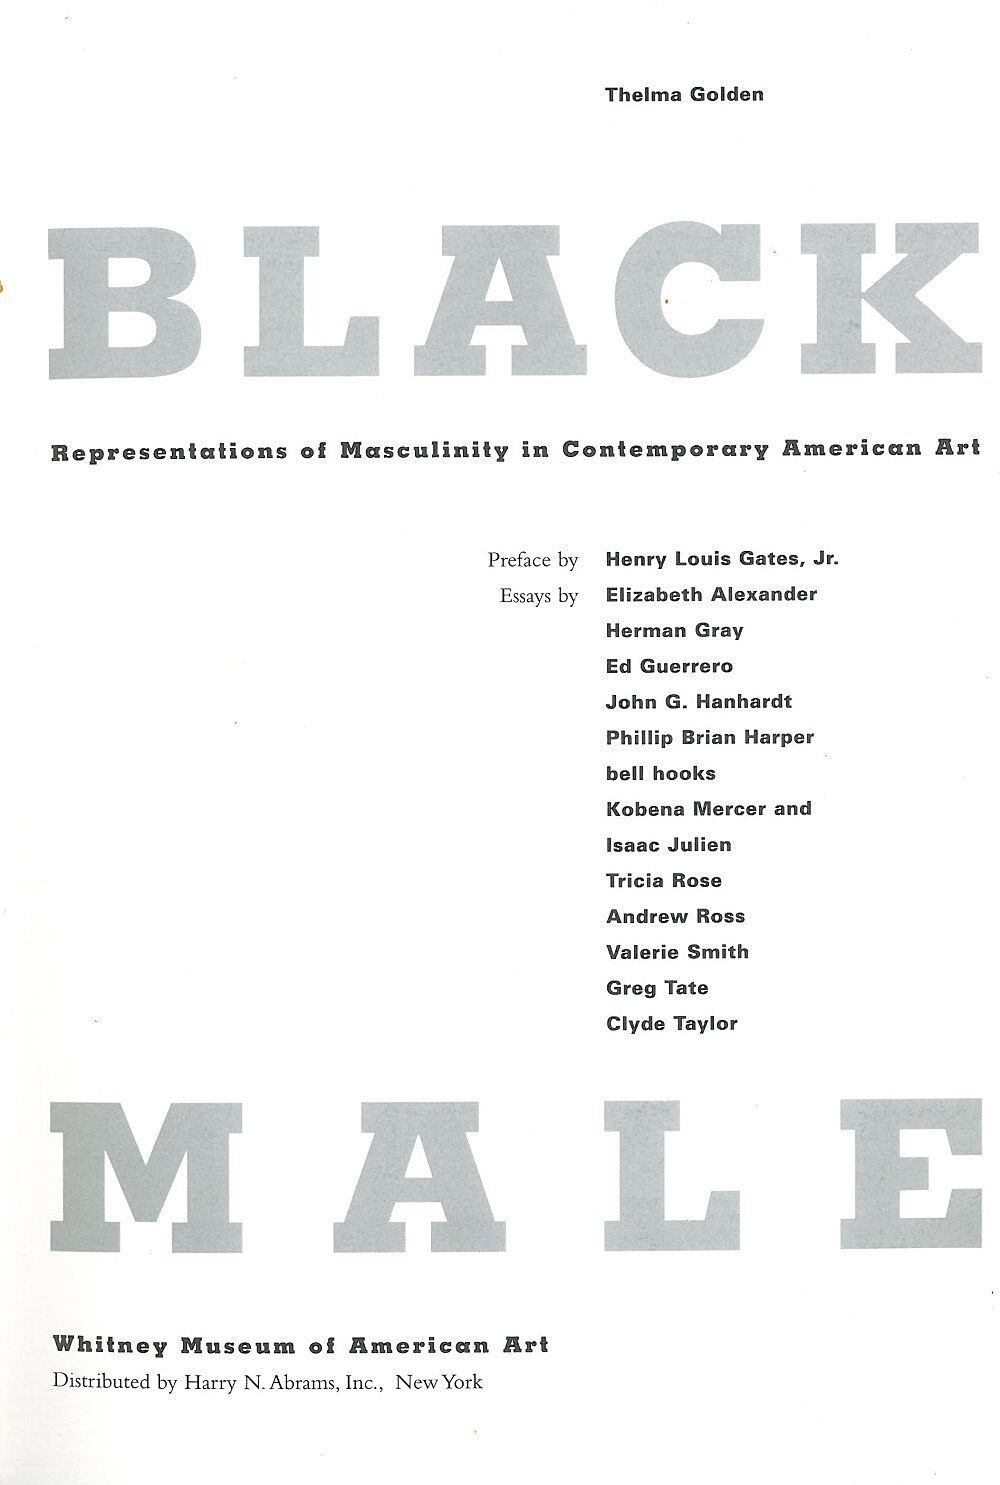 List of artists for Black Male exhibit